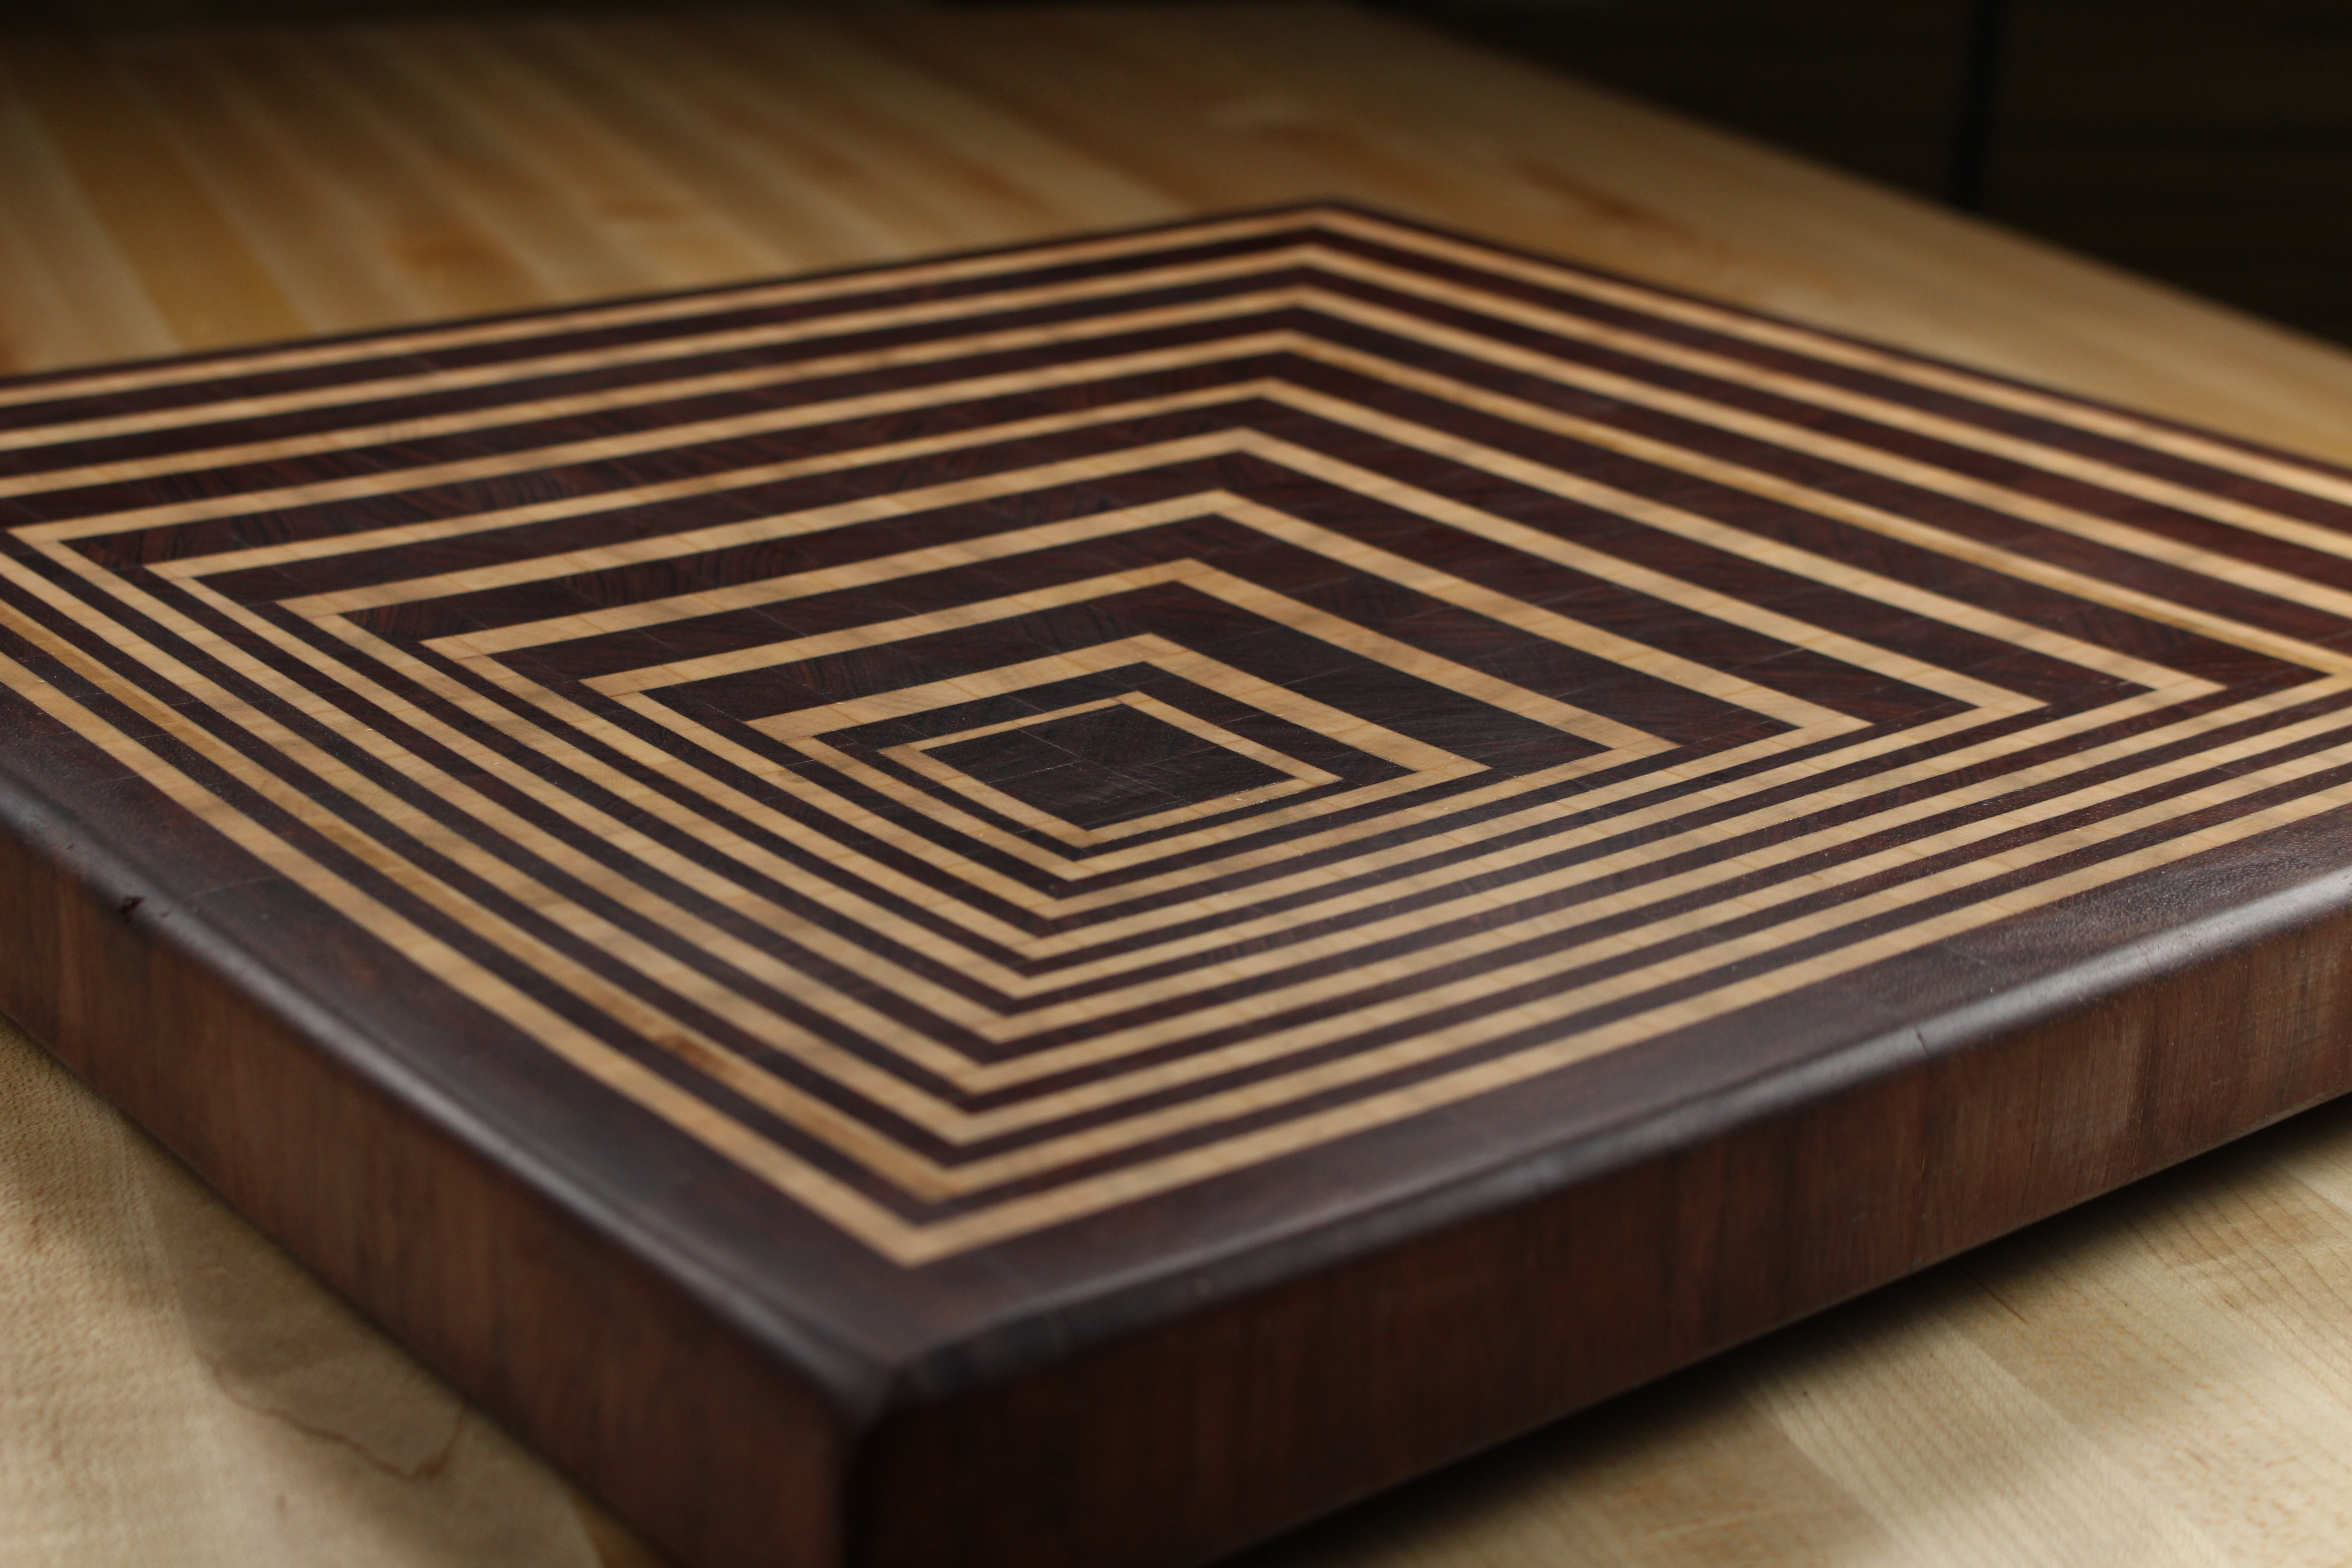 4 Simple Tricks For An Eye-Catching Wood Cutting Board